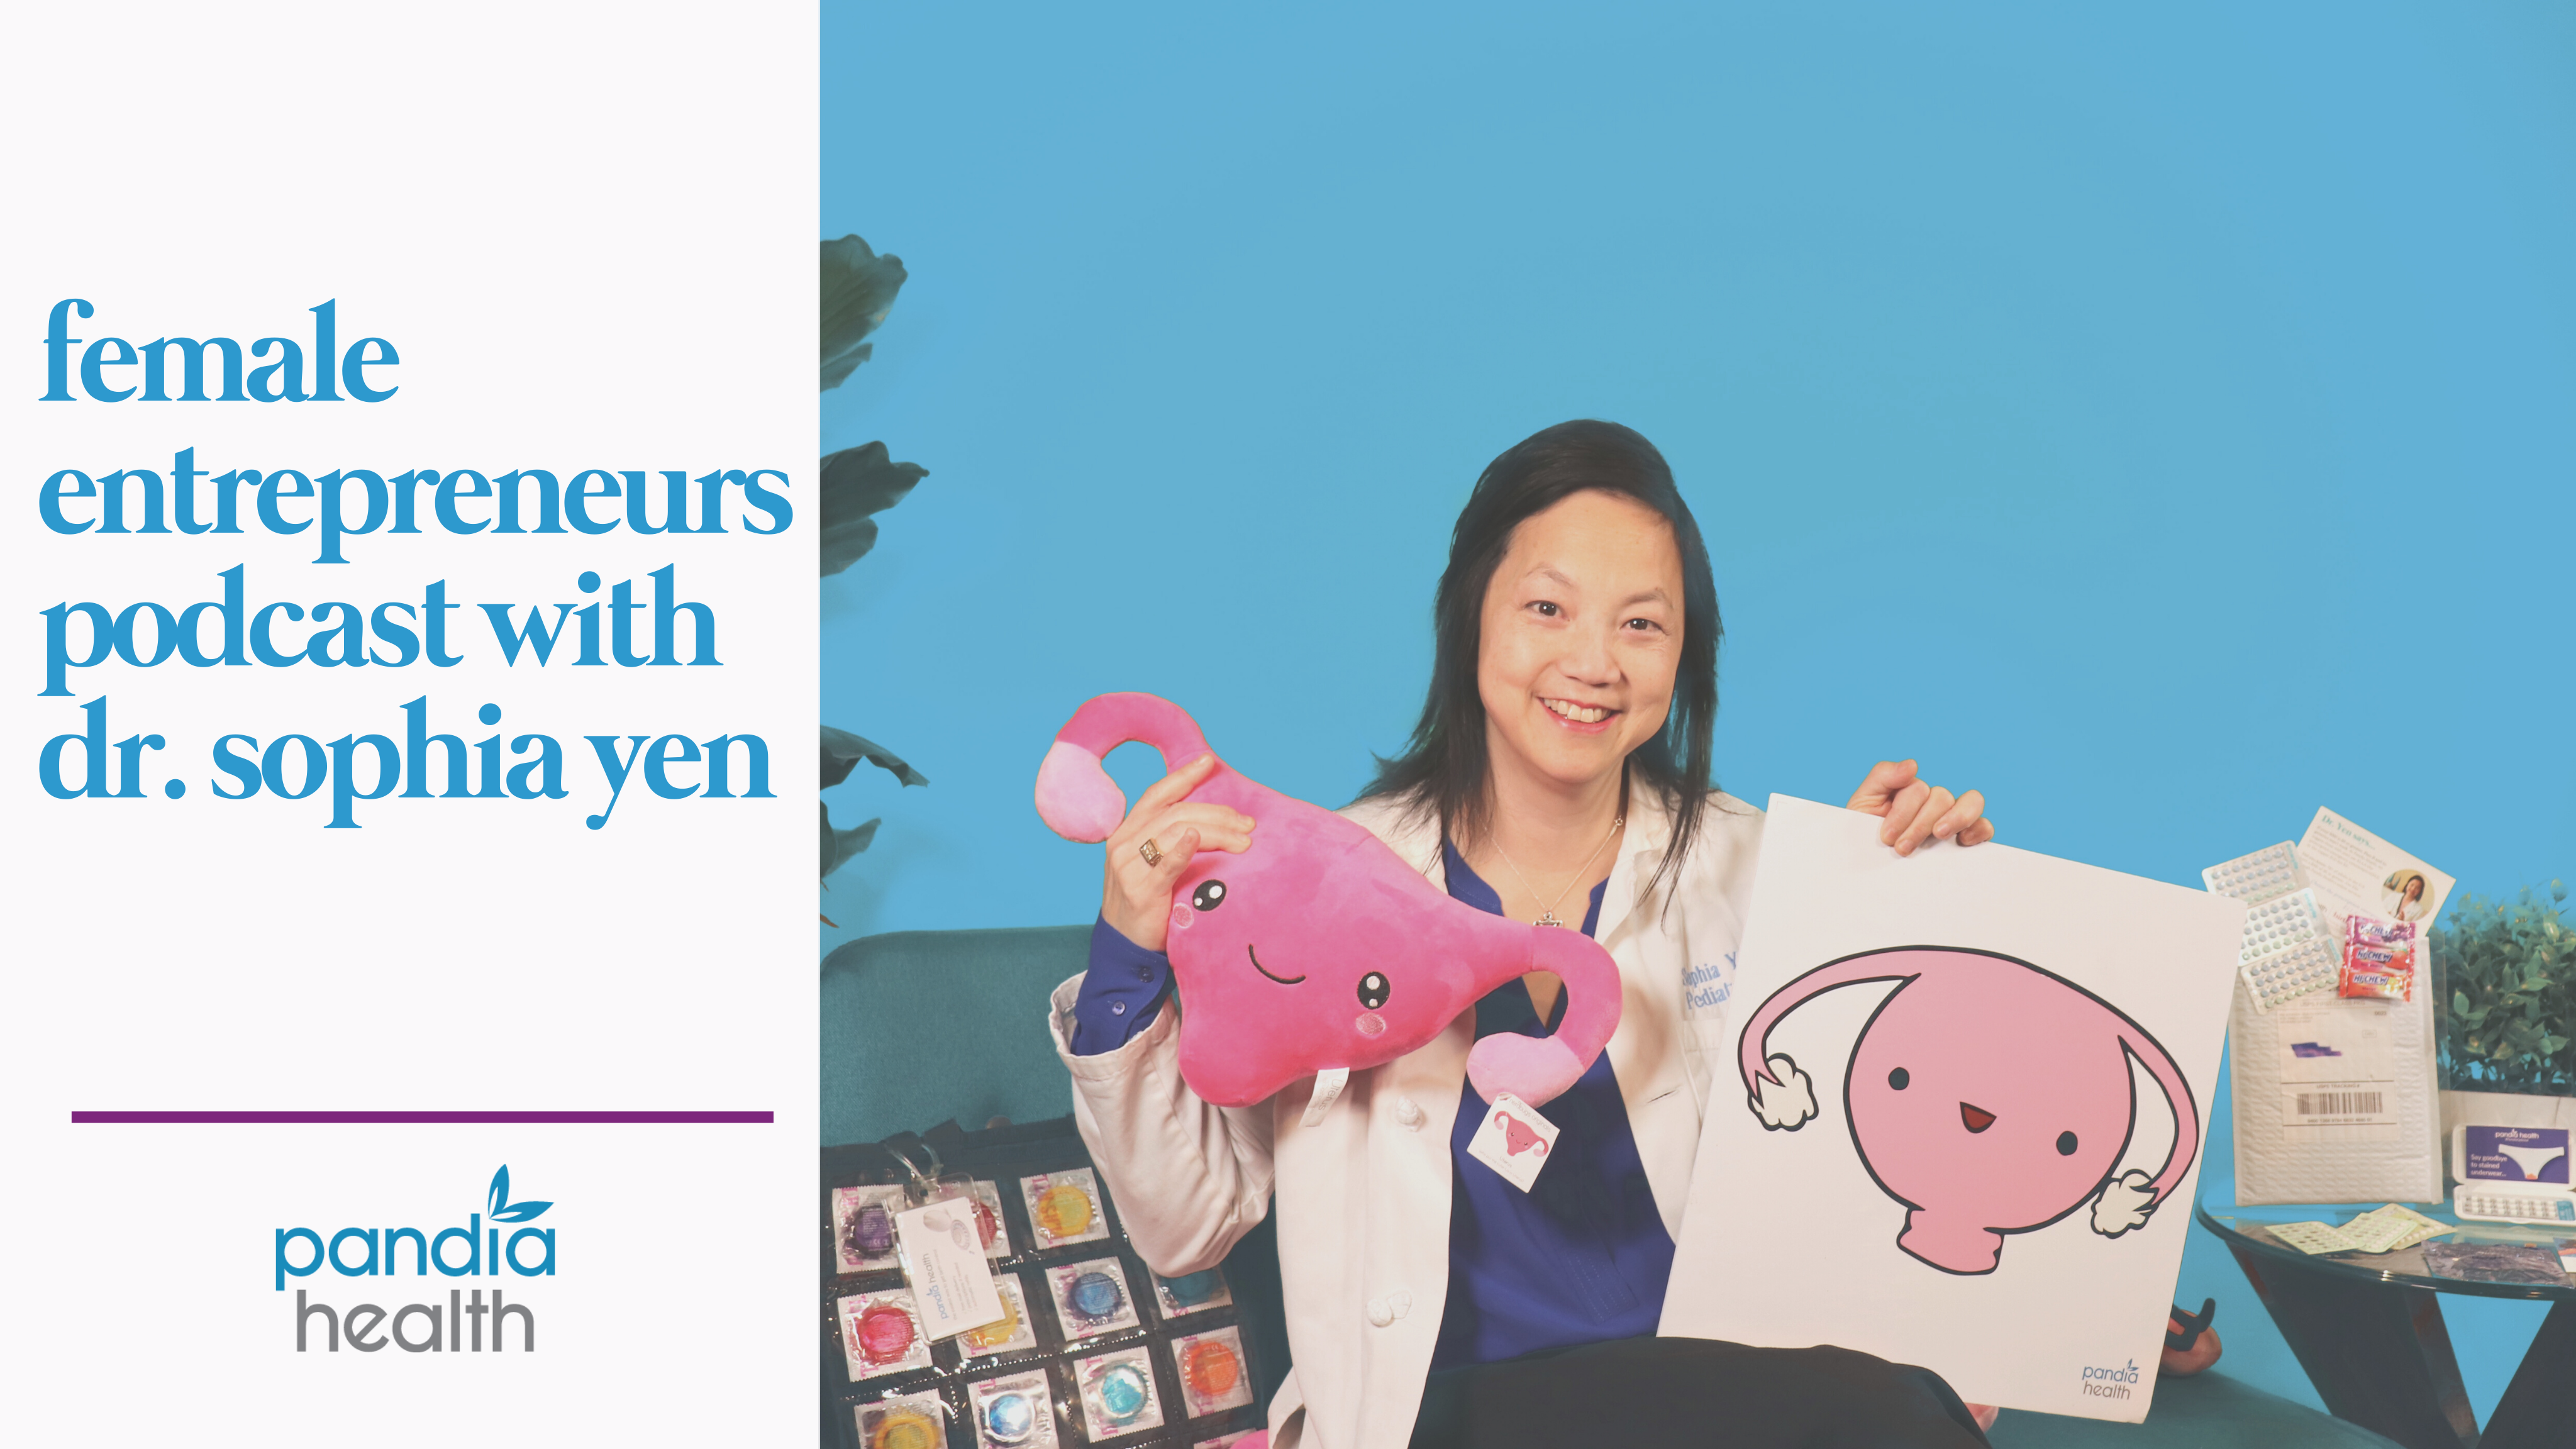 dr. sophia yen holding a pink uterus stuffed animal in one hand and white shirt with uterus on it in the other hand, smiling sitting on couch, condom bag next to her, against a blue background